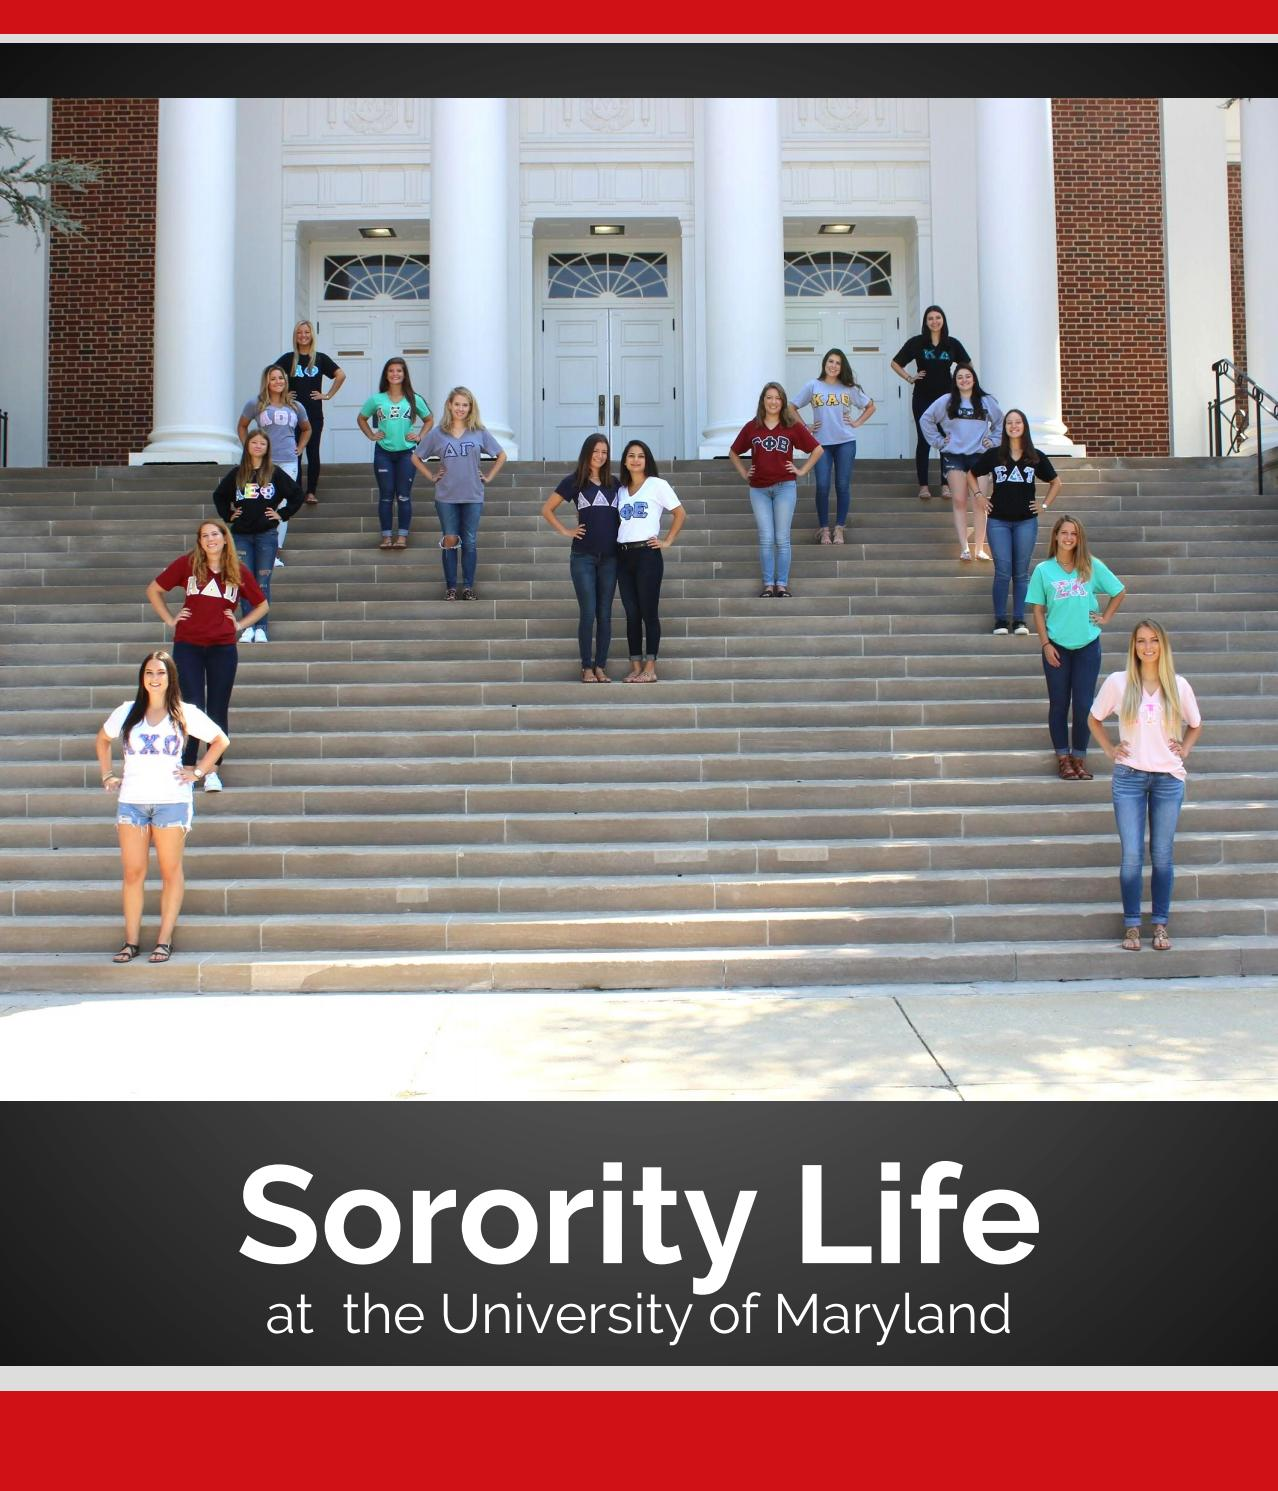 UMD Panhellenic Recruitment Guide by UMD Panhellenic